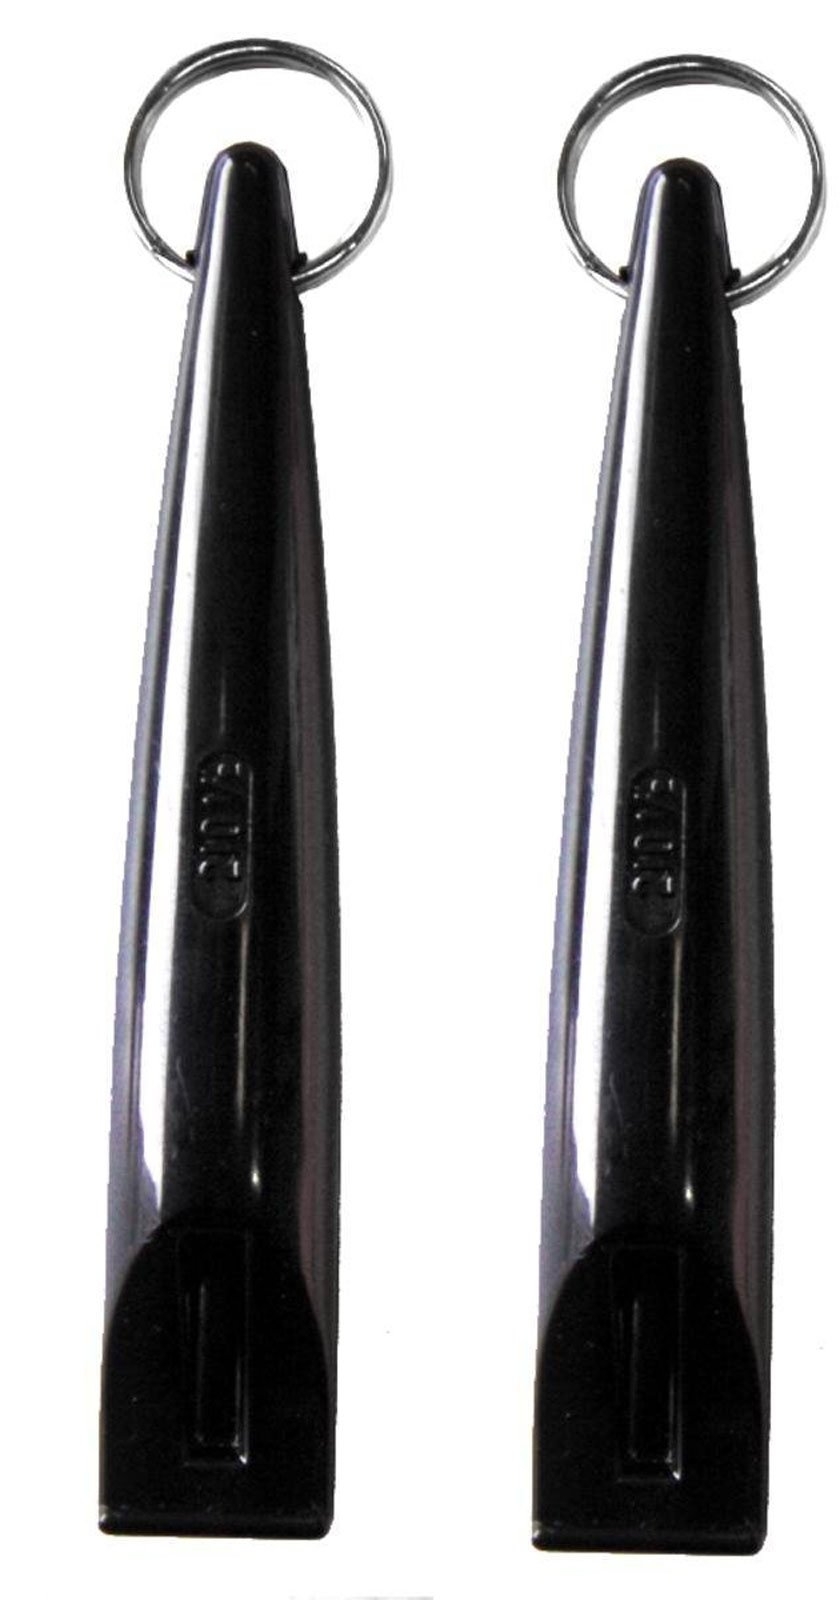 Acme Dog Whistle 210.5 Black (2 Pack) by ACME